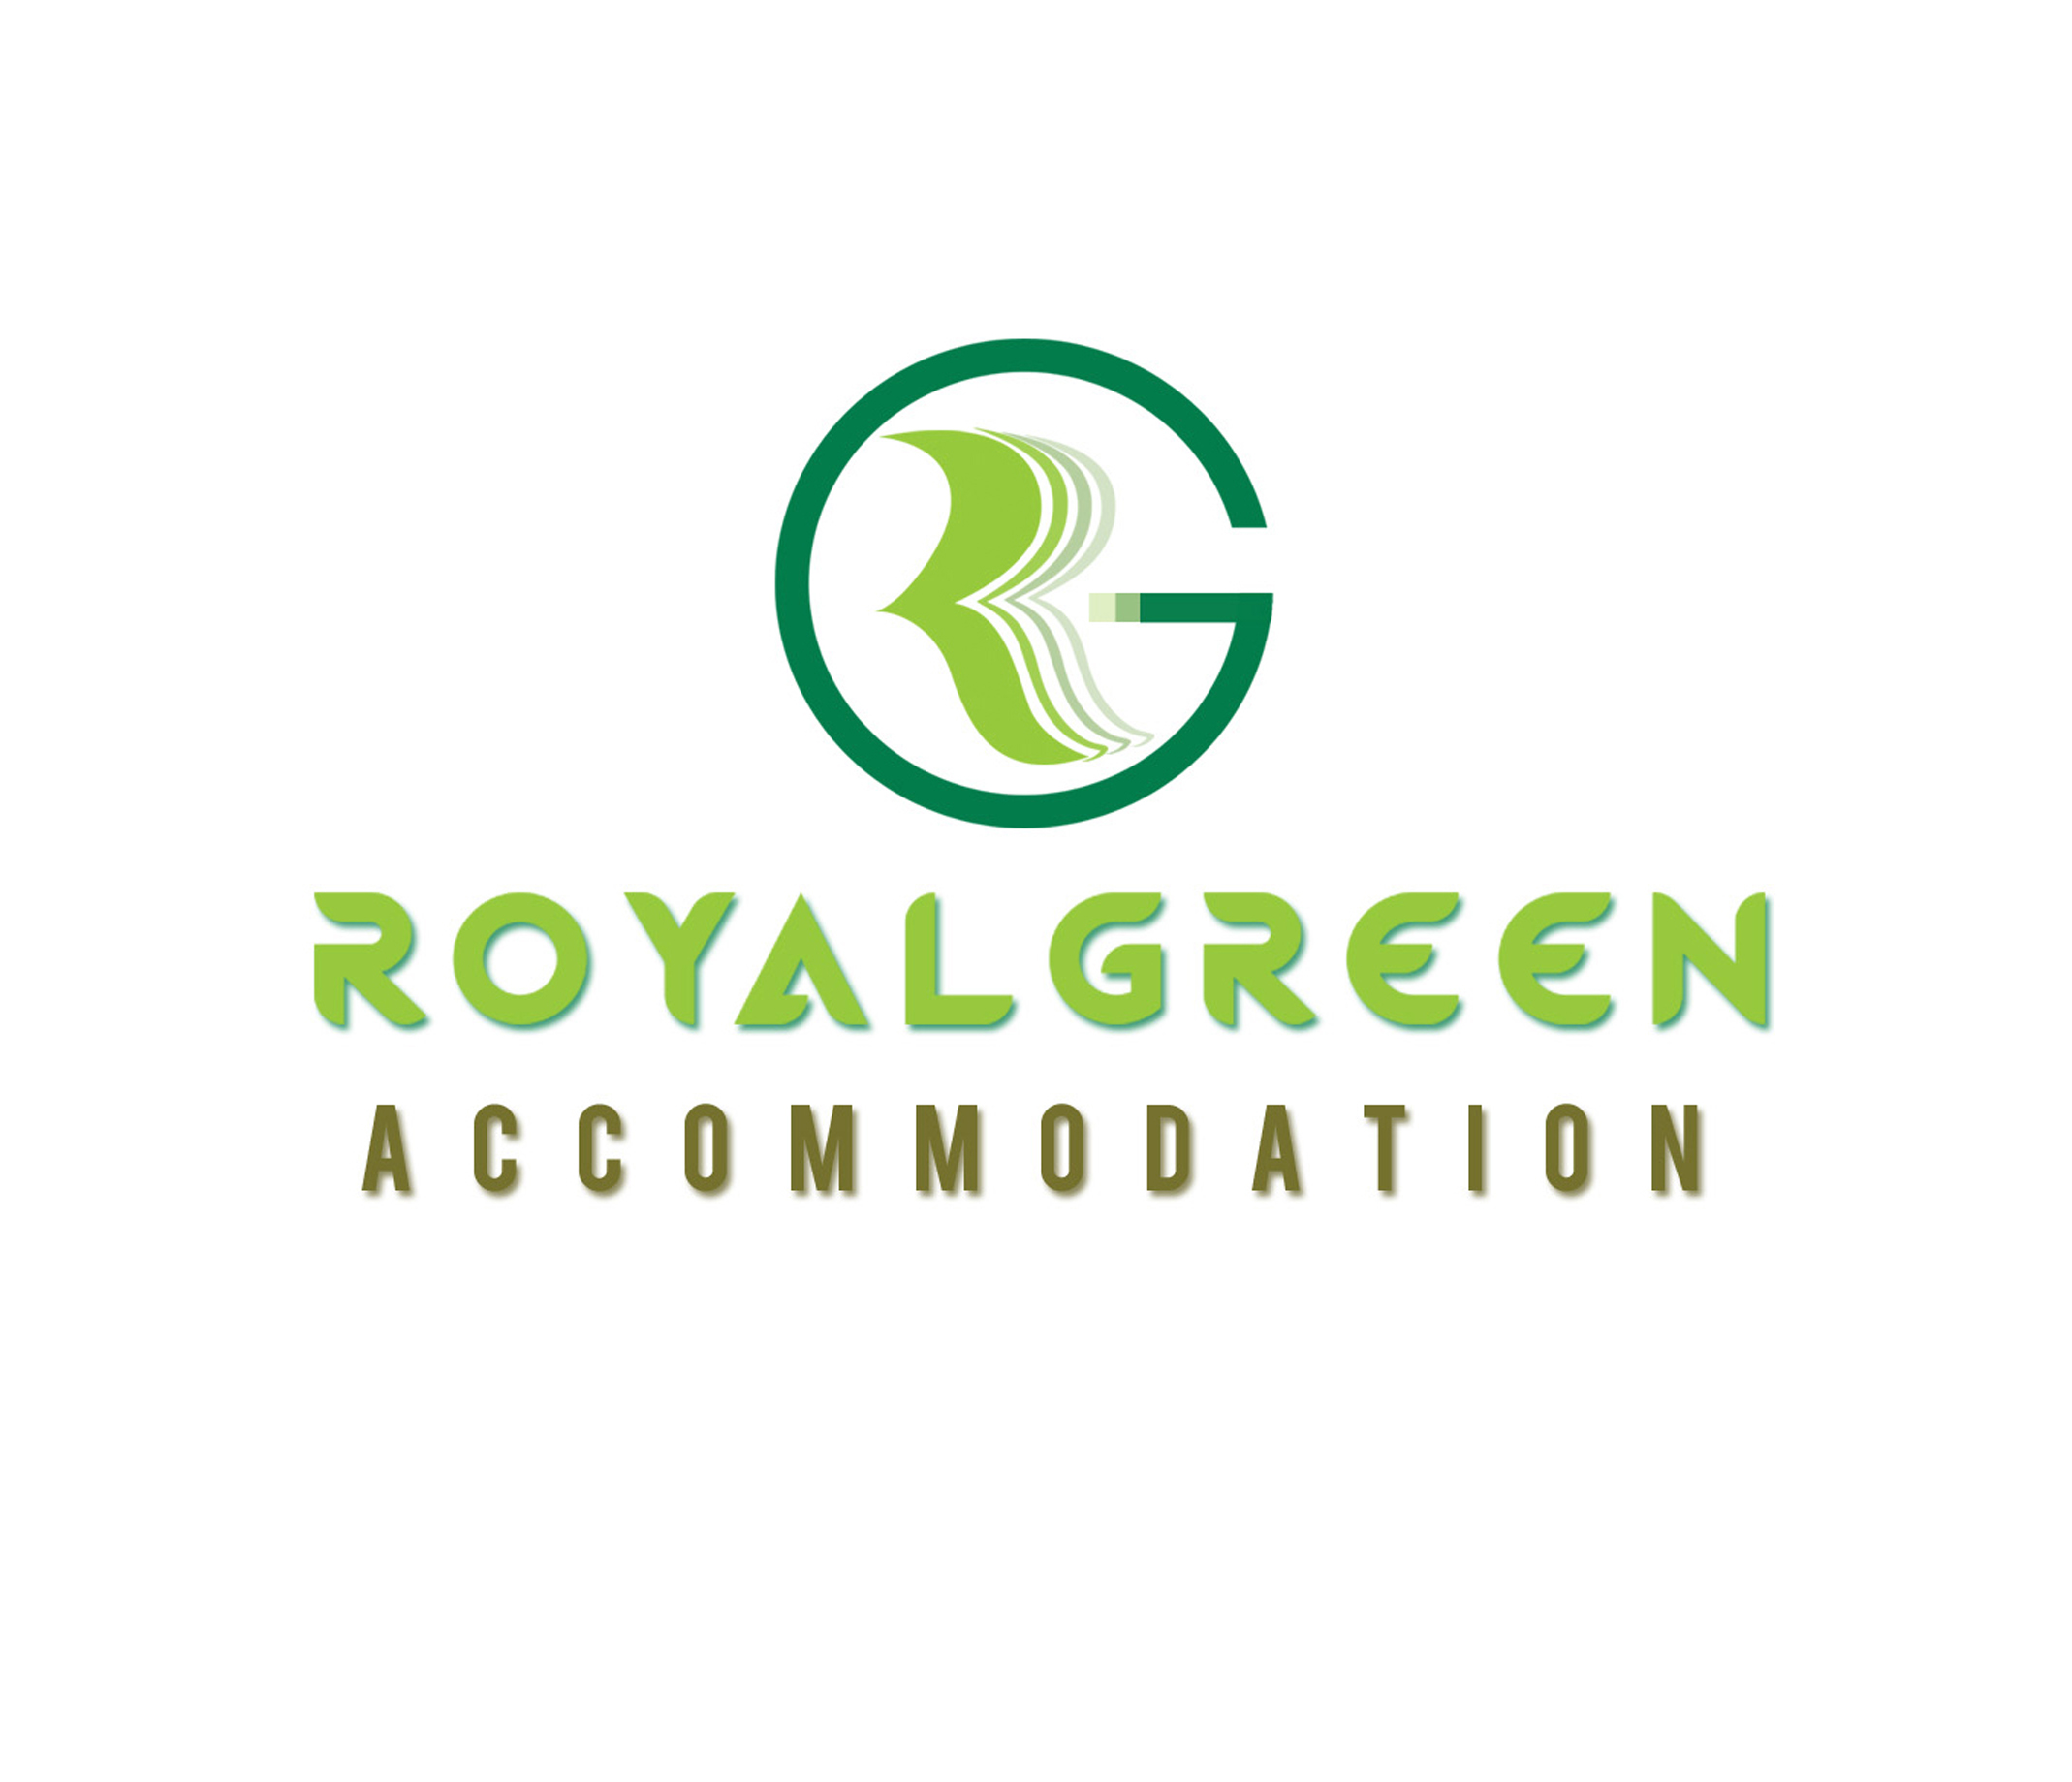 Royal Green Accommodation